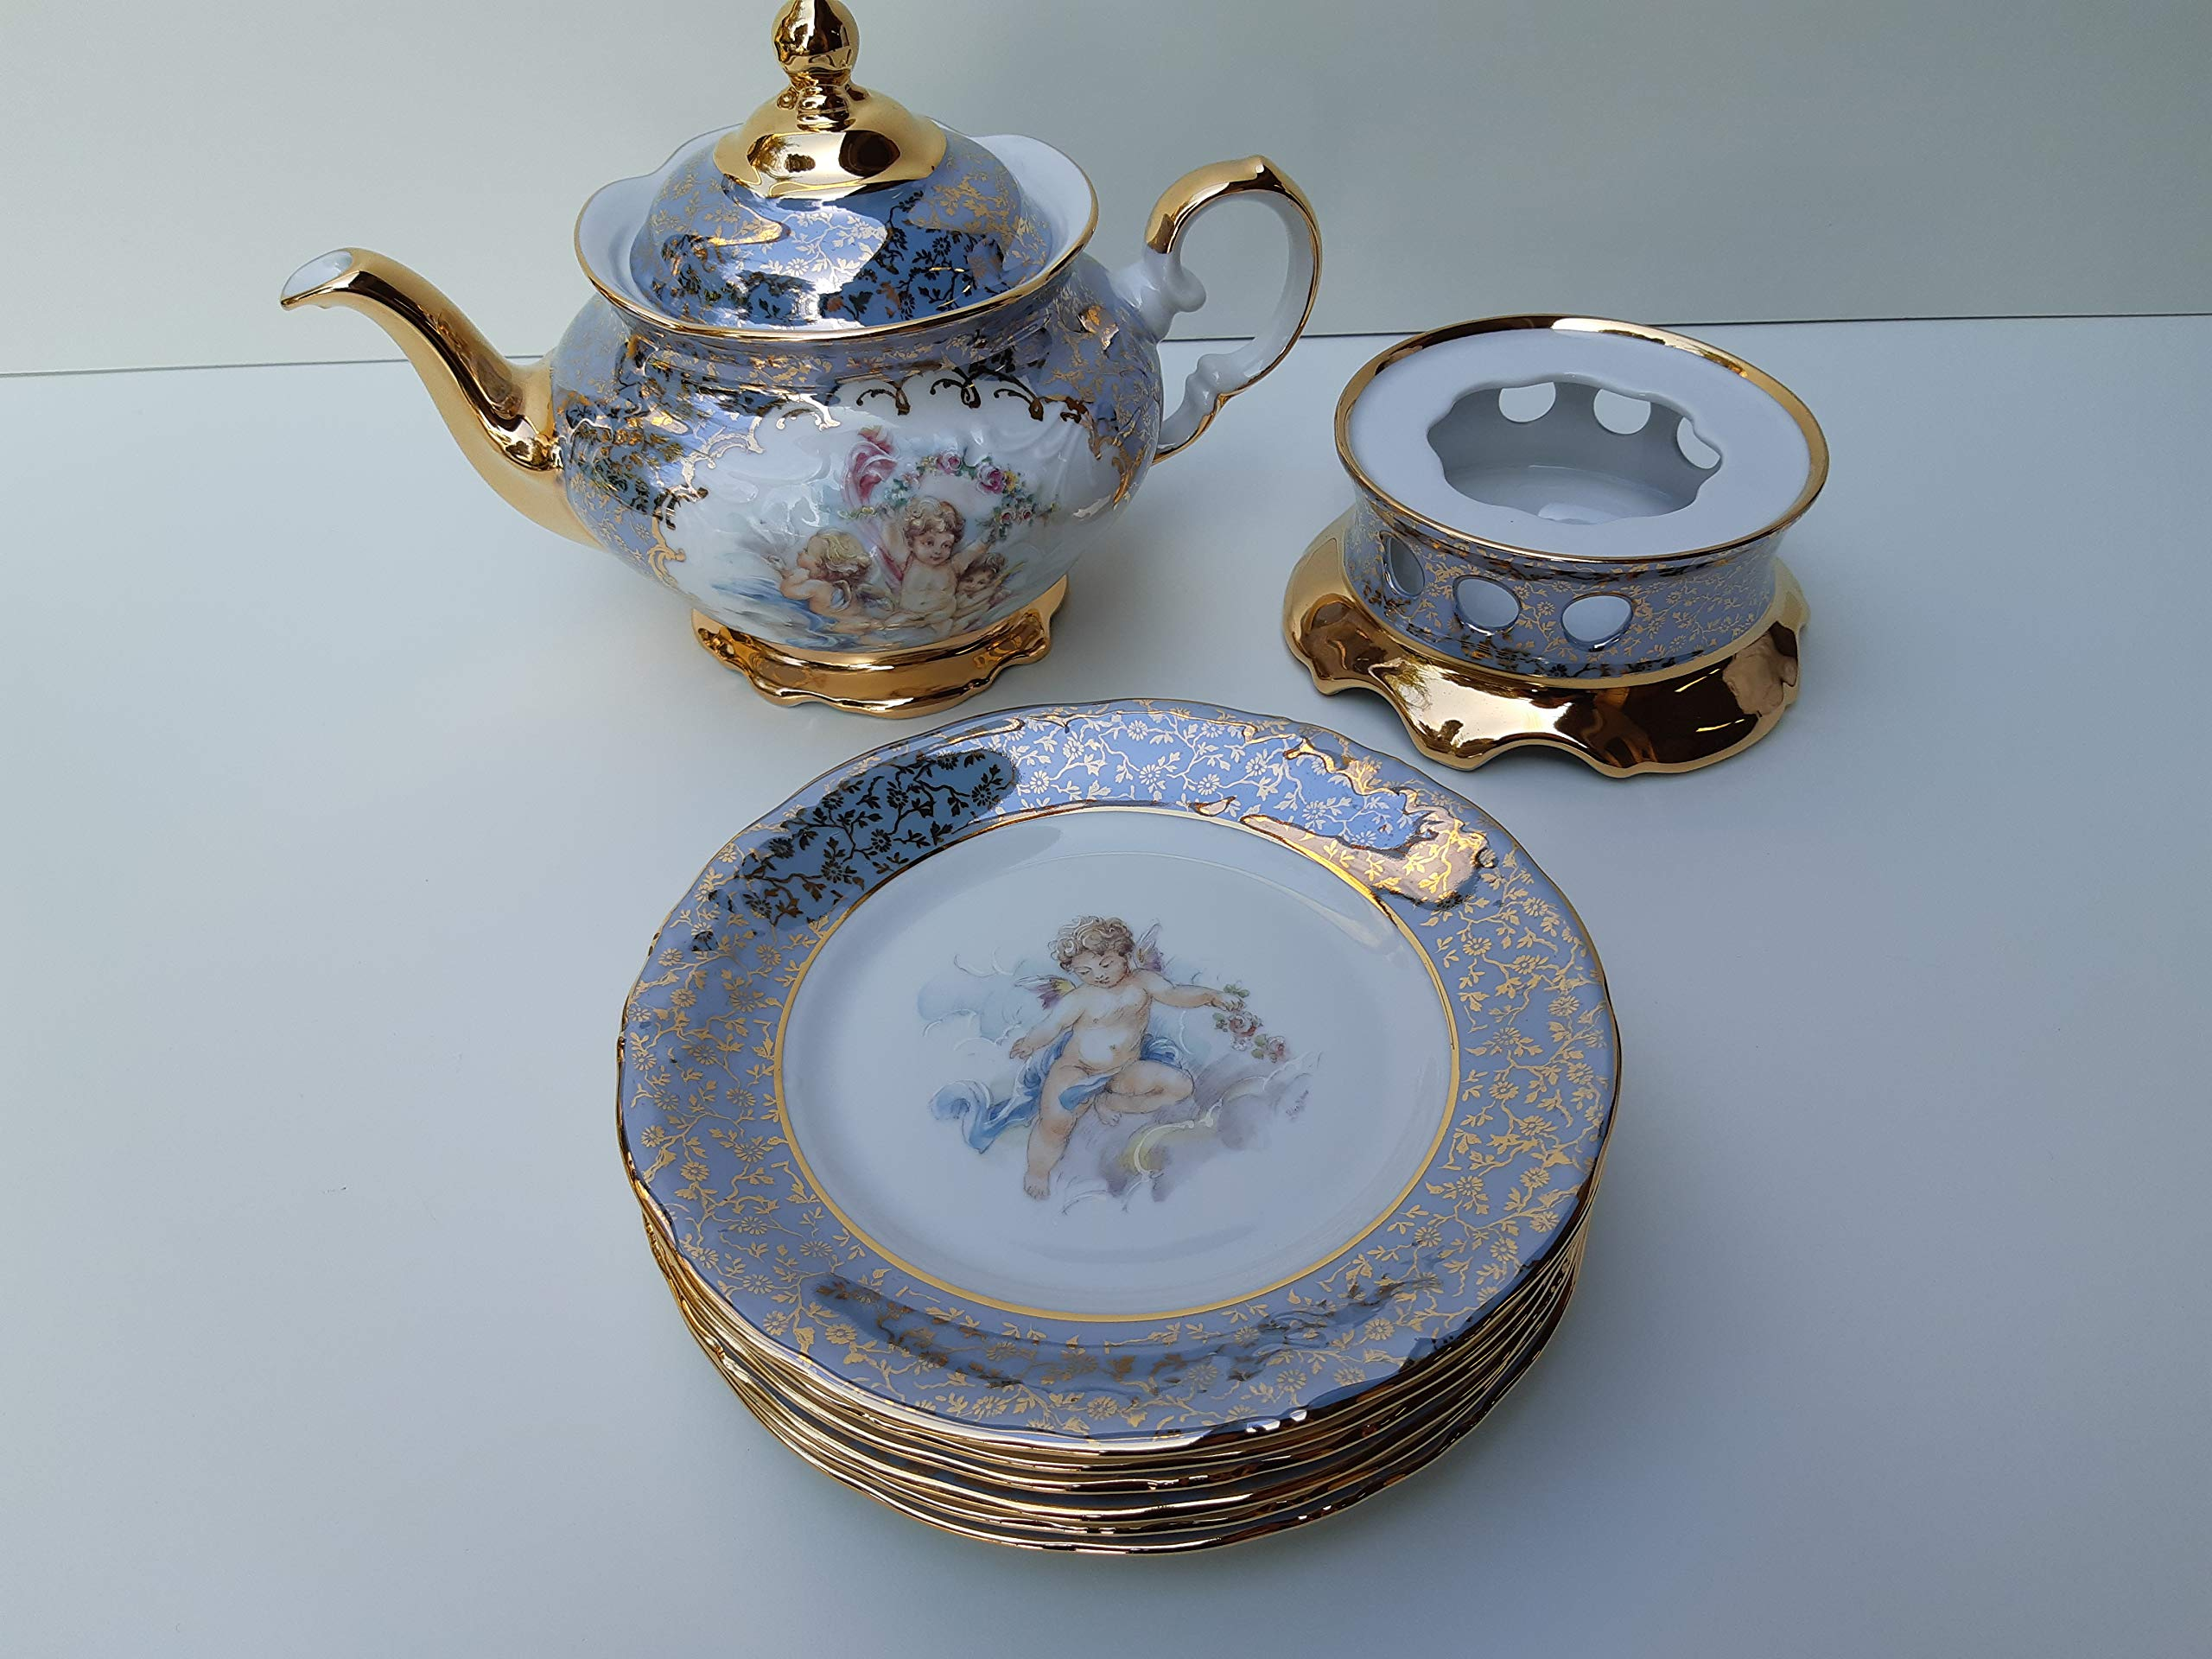 Tea pot warmer and set 06 cake plates light blue angel with gold